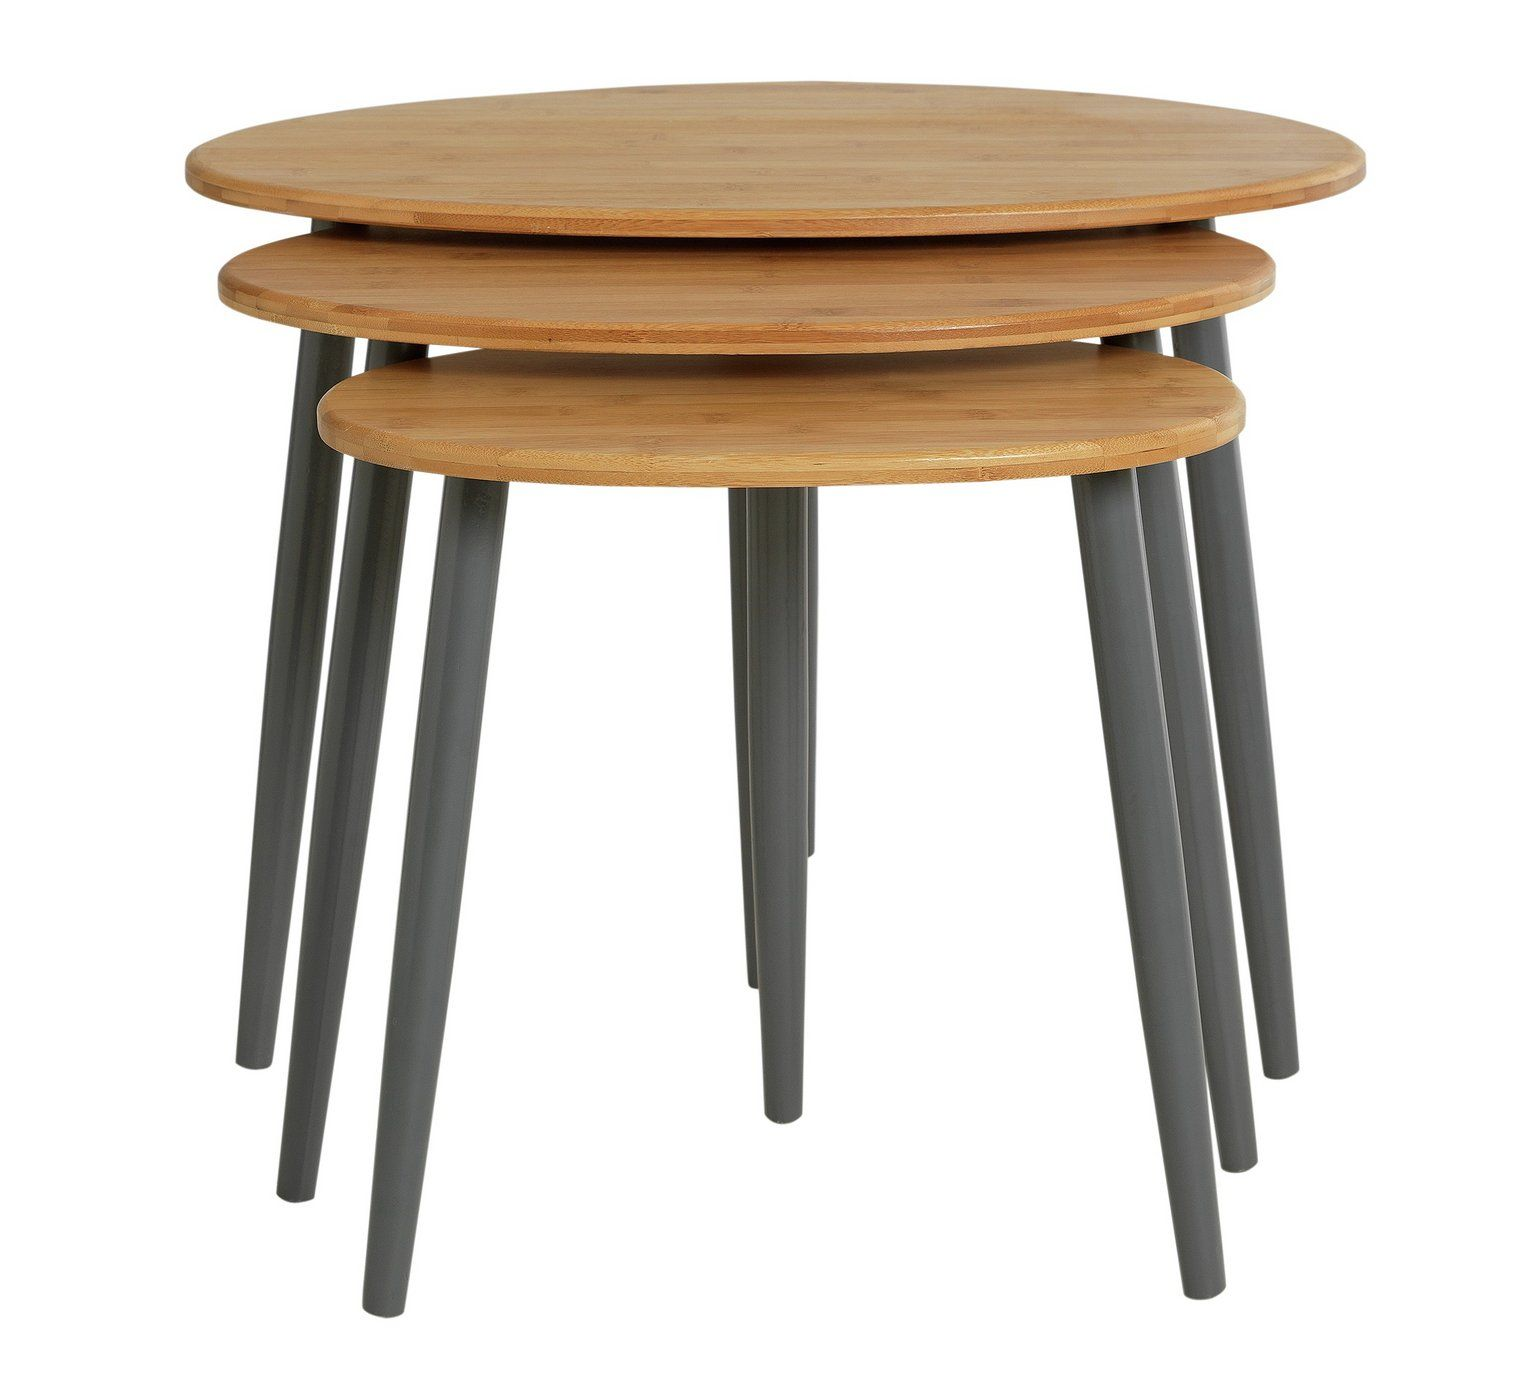 Buy Collection Nest of 3 Tables - Bamboo at Argos.co.uk, visit Argos ...